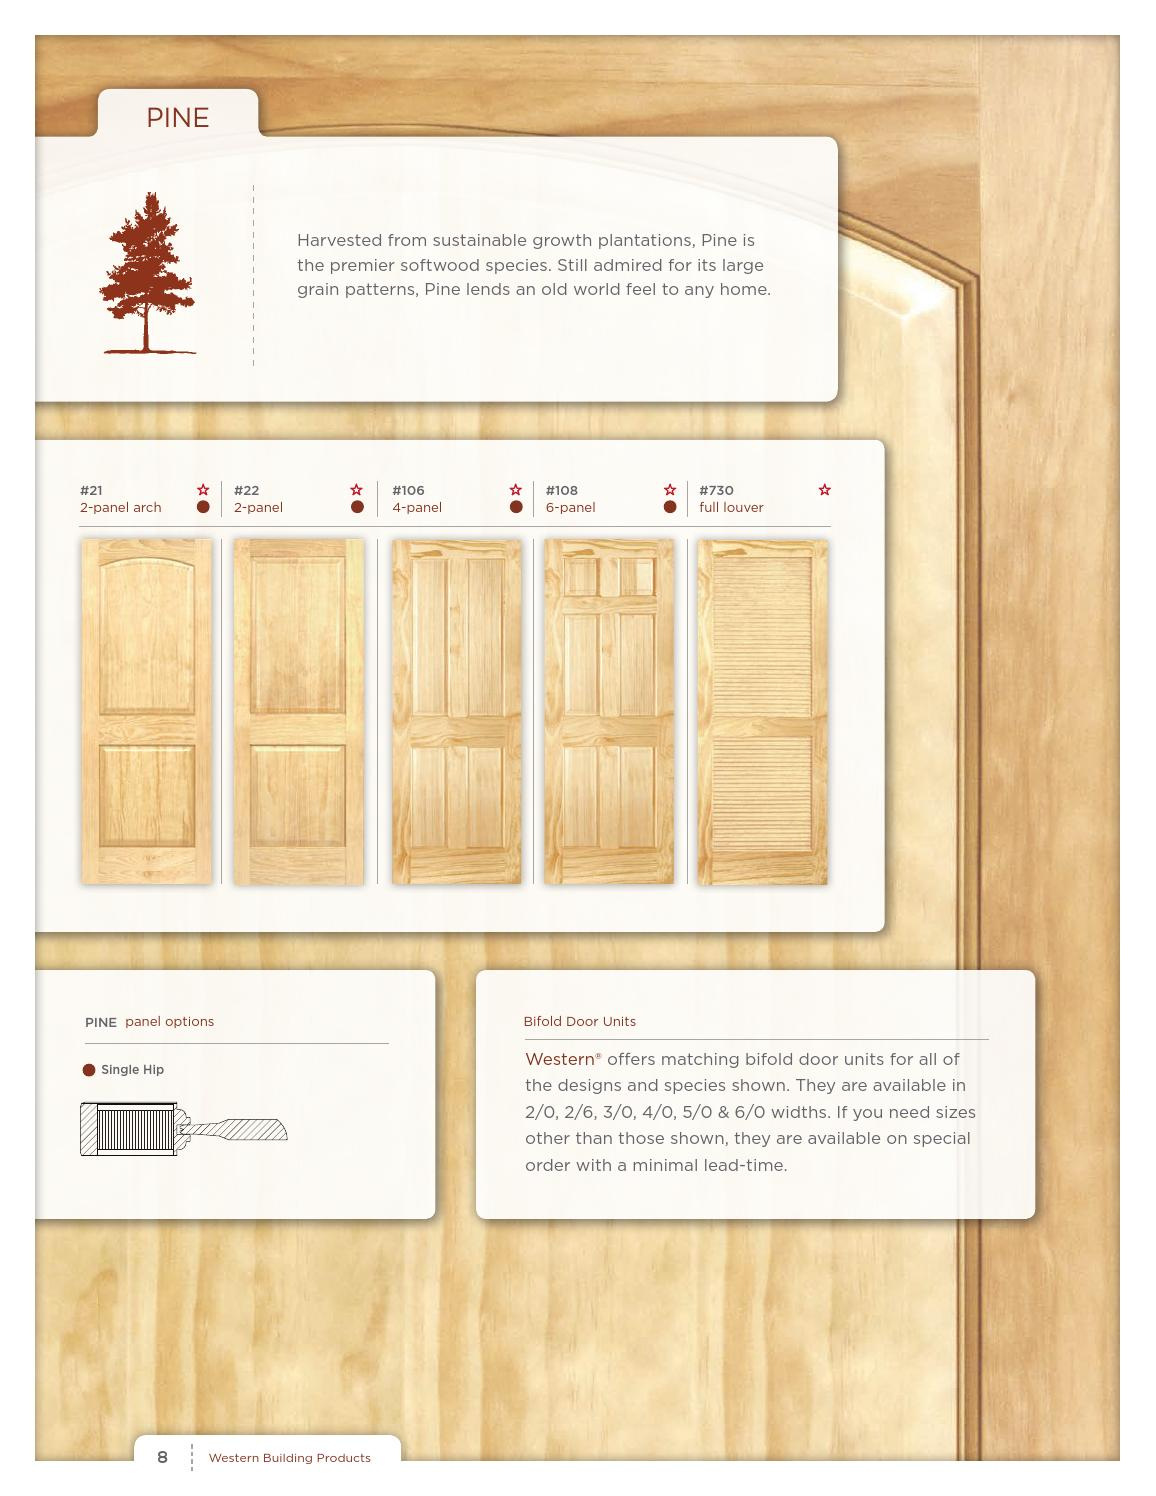 Western Interior Door Brochure By Western Building Products Page 8 Issuu